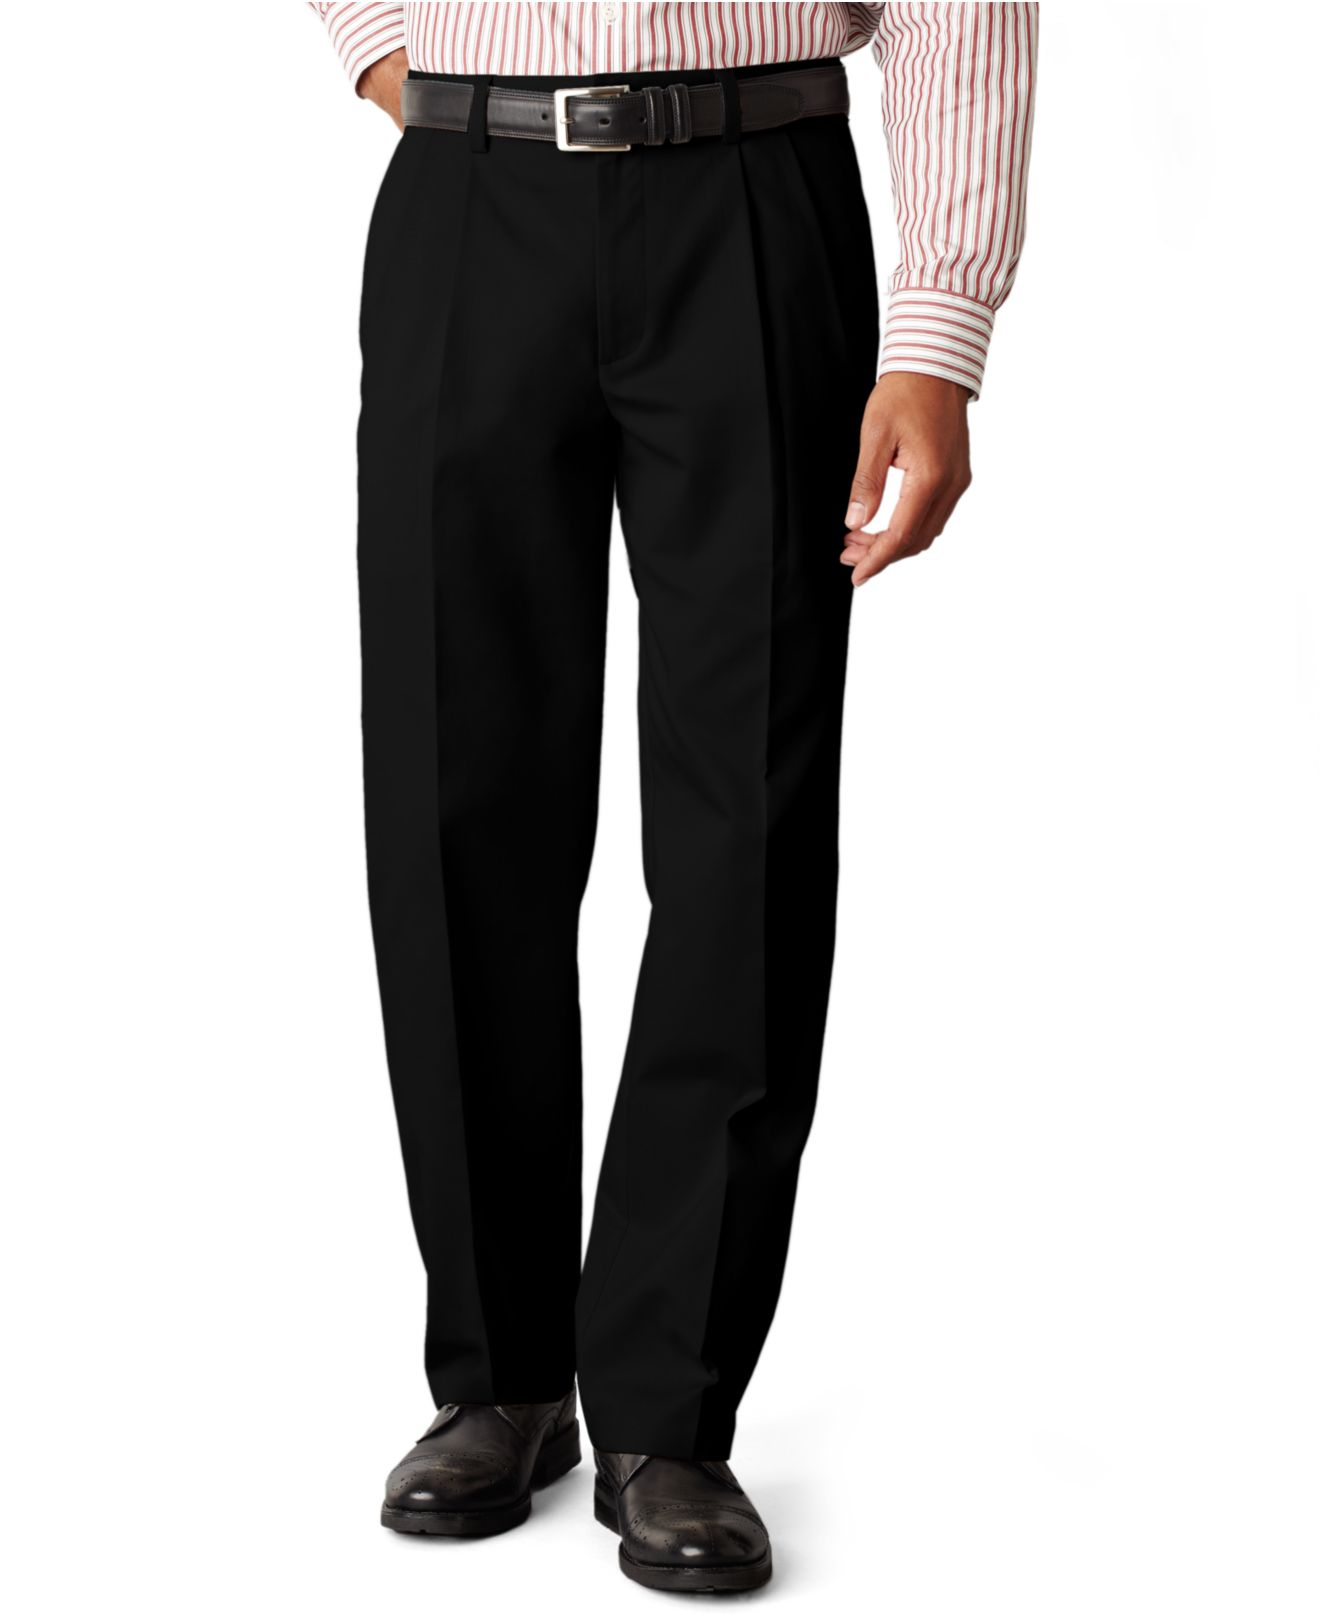 Browse men's pants to style with your workweek attire. Work pants for the nine-to-fiver are an essential building block of men's clothing. Complete the look with men's black pants or black slacks.